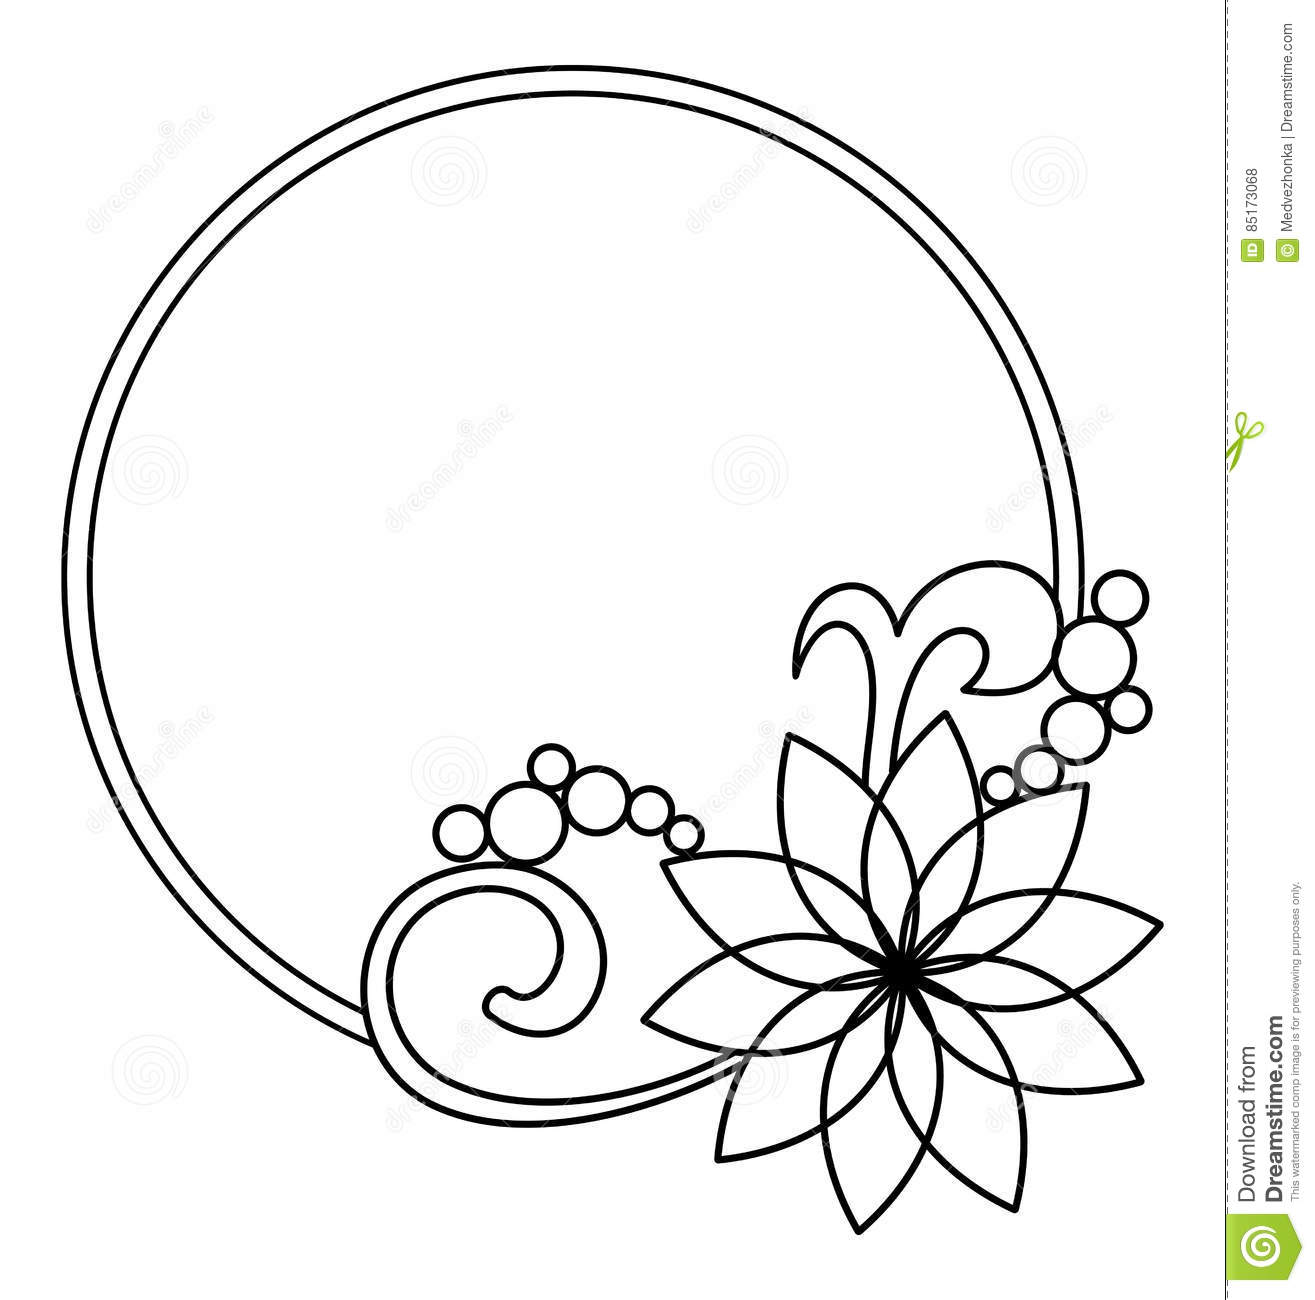 Elegant Round Frame With Contours Of Flowers Raster Clip